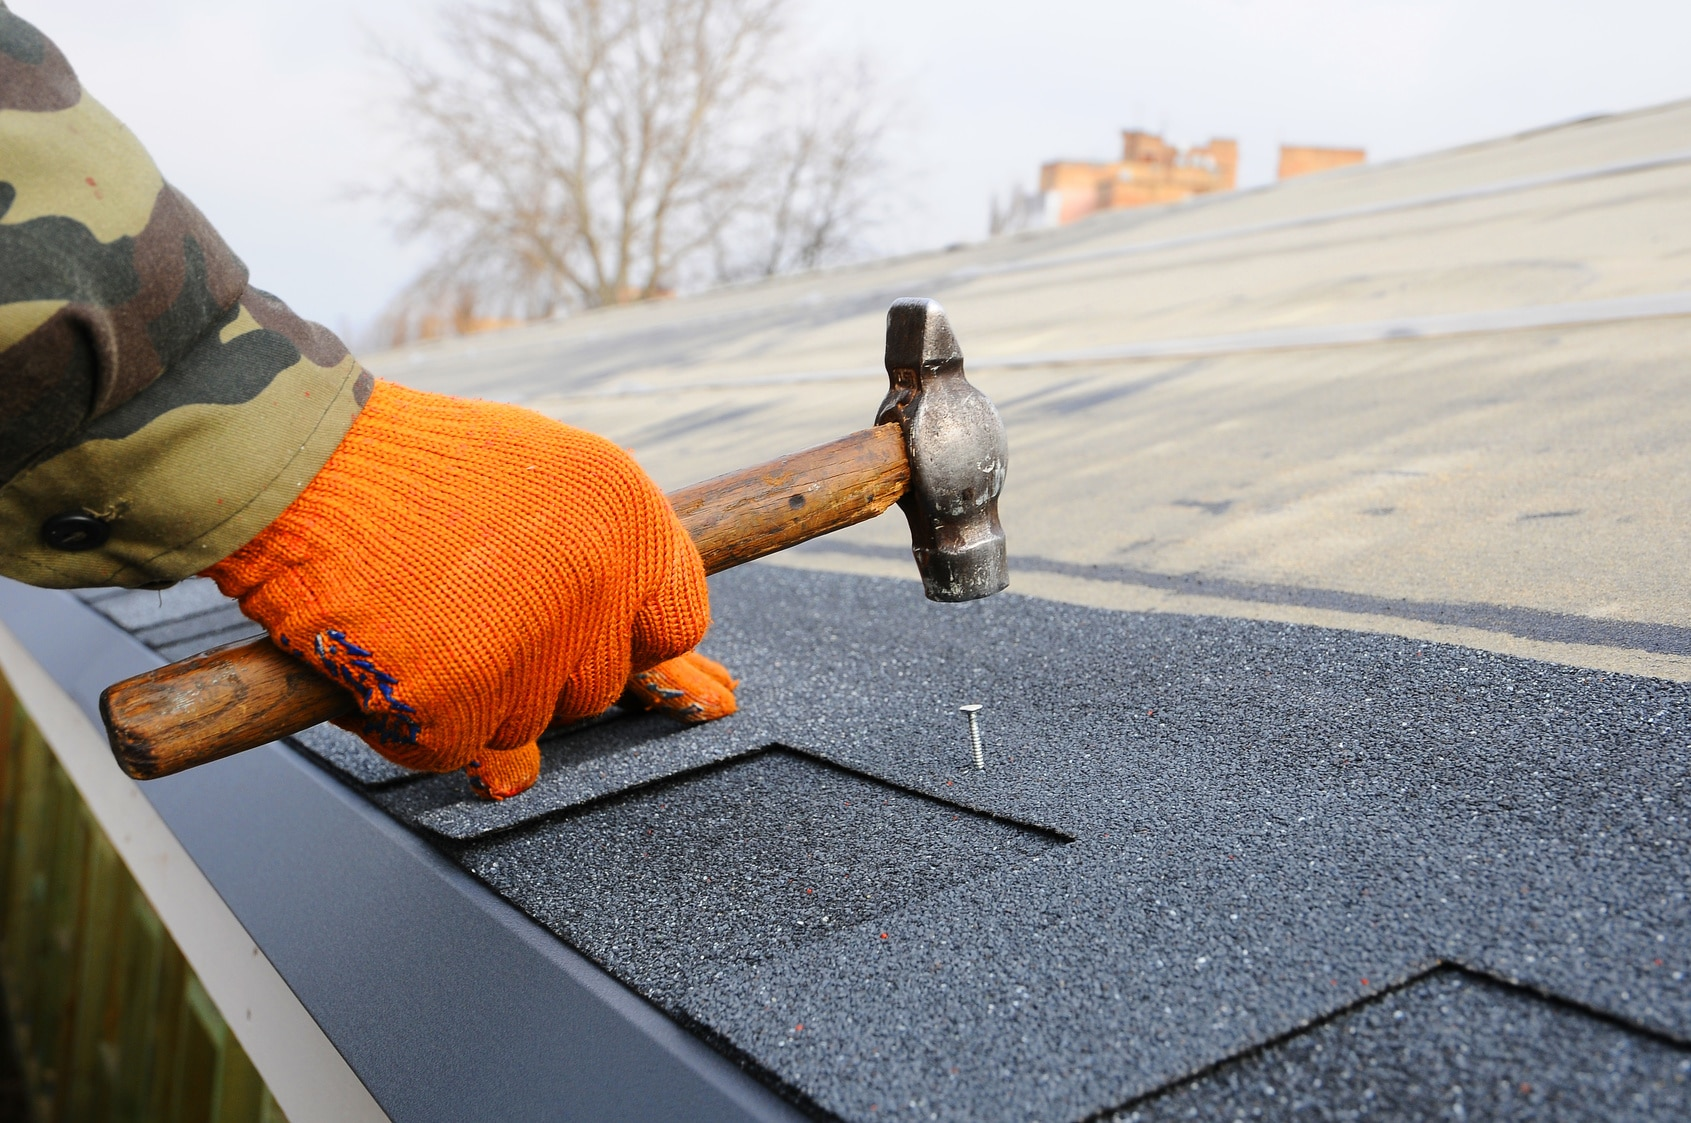 Waterproof your roof to prevent water damage - ServiceMaster Disaster Associates, Inc. in Stoneham, MA - someone hammering down a shingle on the roof